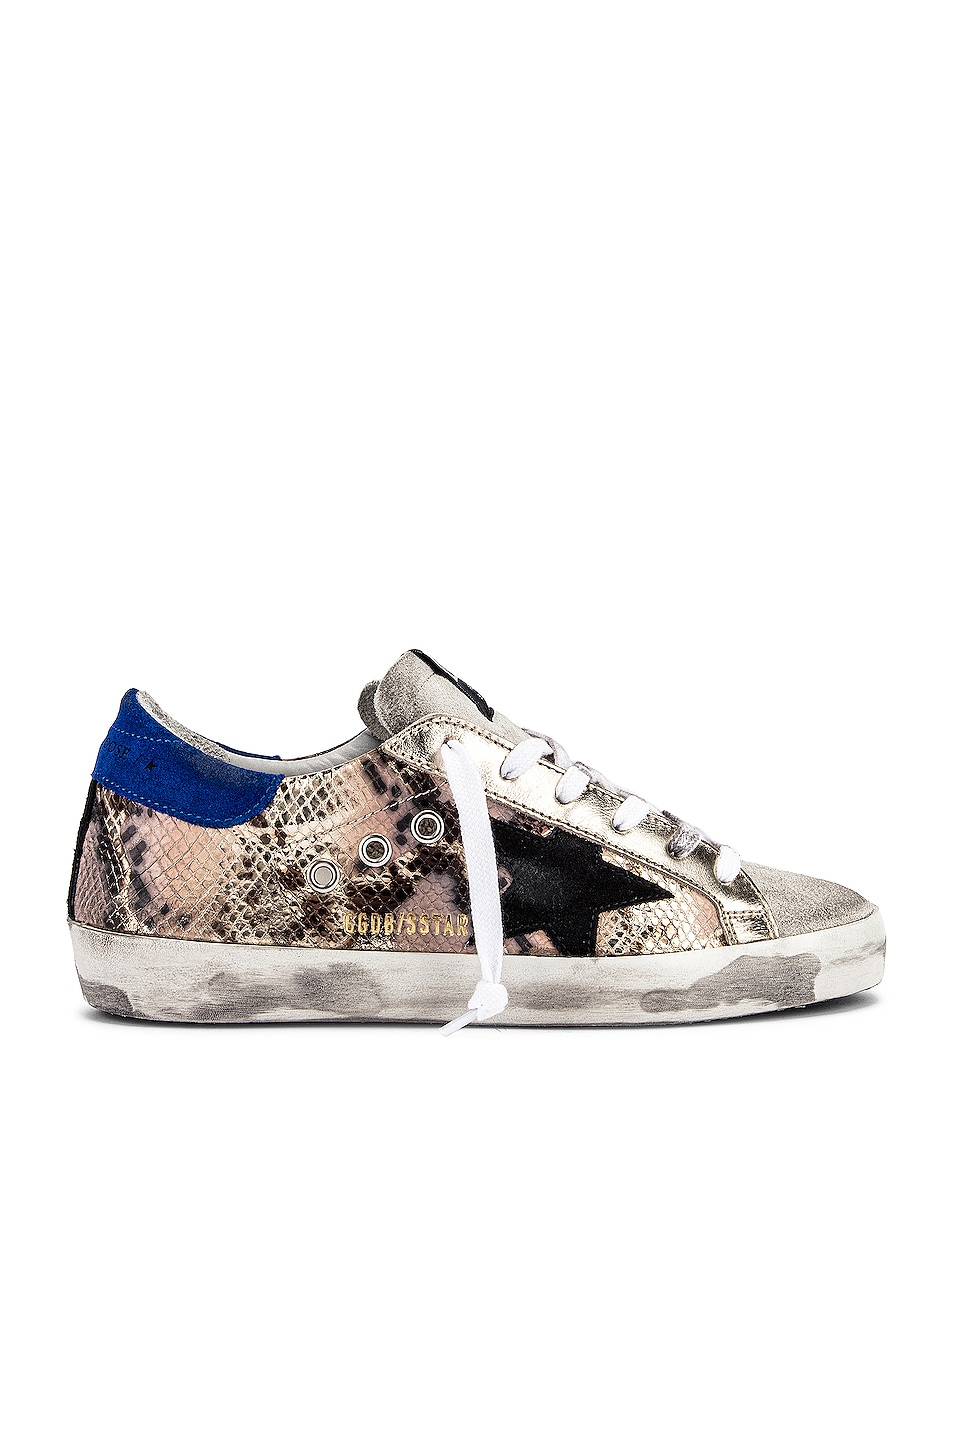 Image 1 of Golden Goose Superstar Sneaker in Python & Black Star